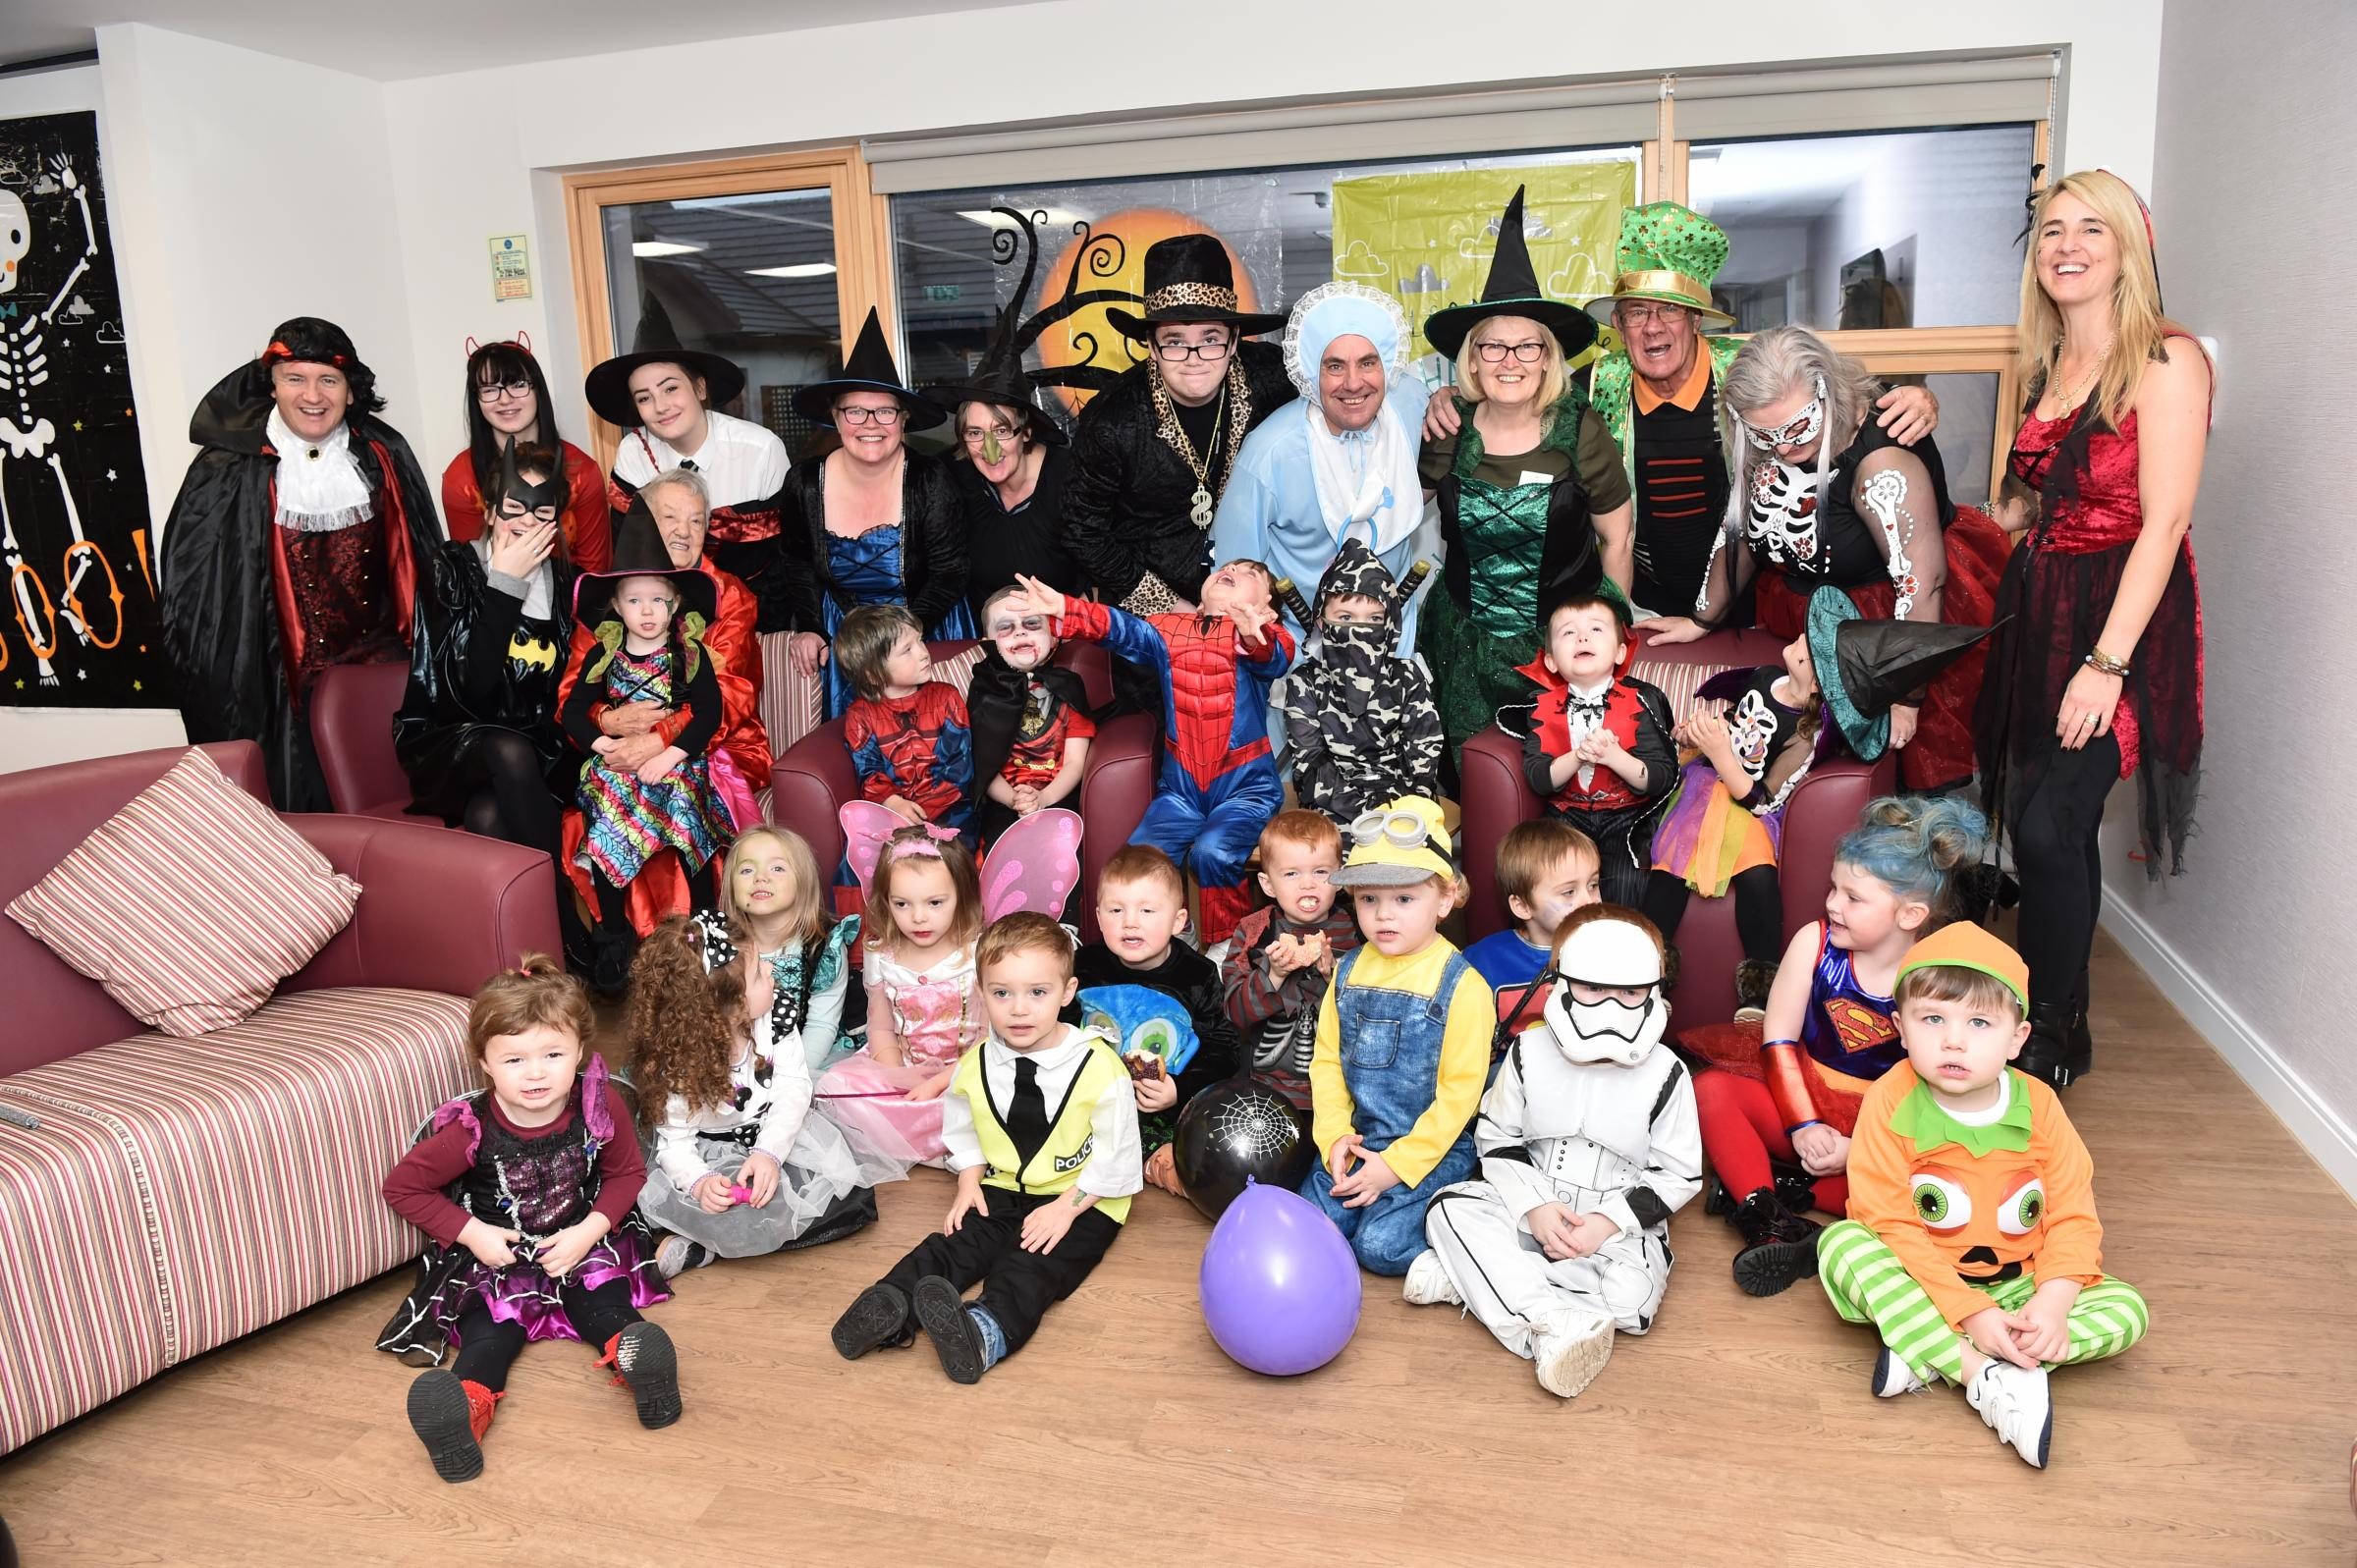 St Bridget's youngsters celebrate Hallowe'en in local care home